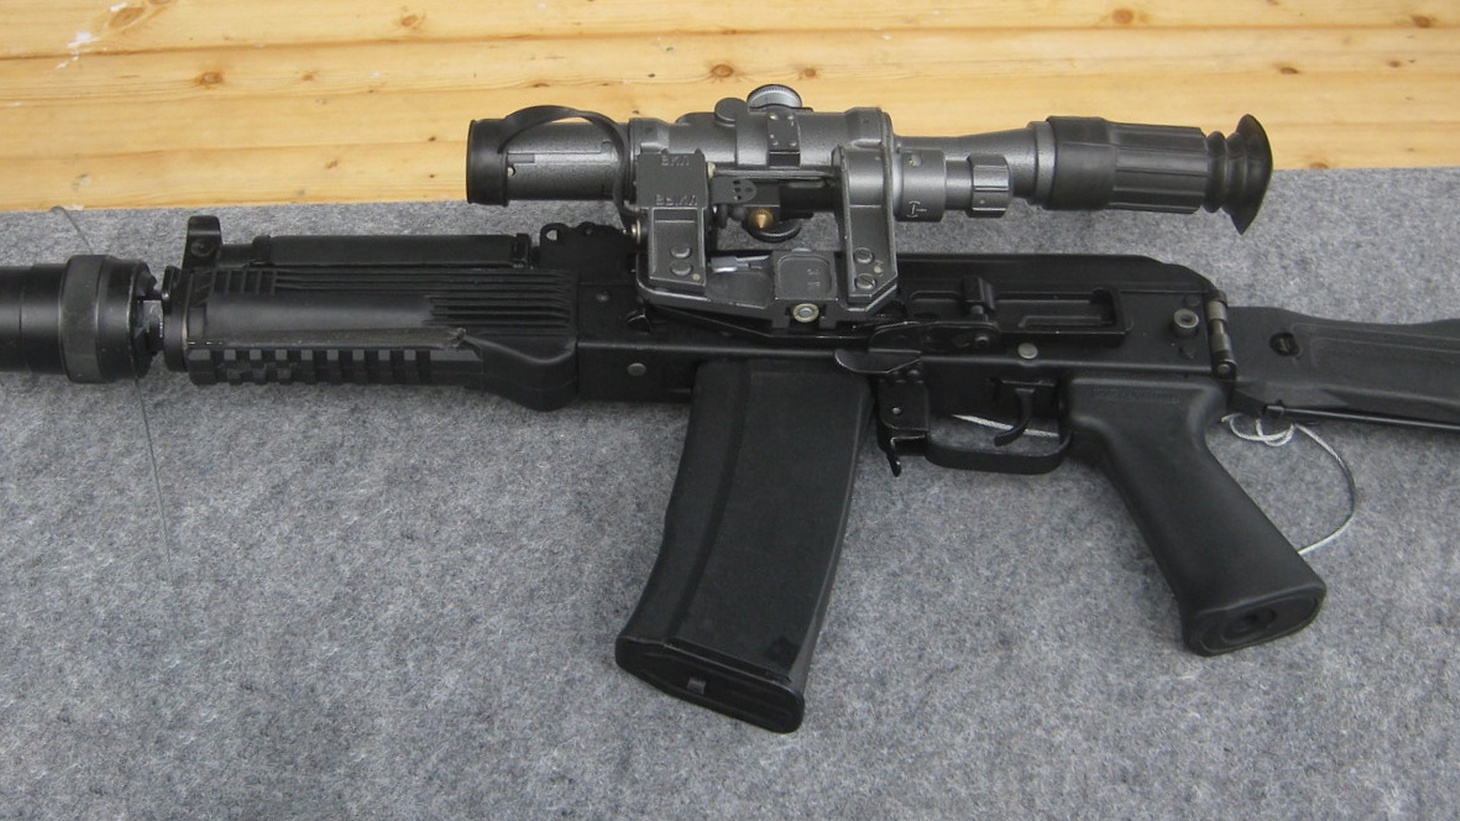 An AK-9 assault rifle. Journalist Leon Krauze says guns, especially assault weapons, are being bought in the U.S. and then smuggled into Mexico, which is fueling violence involving drug cartels.